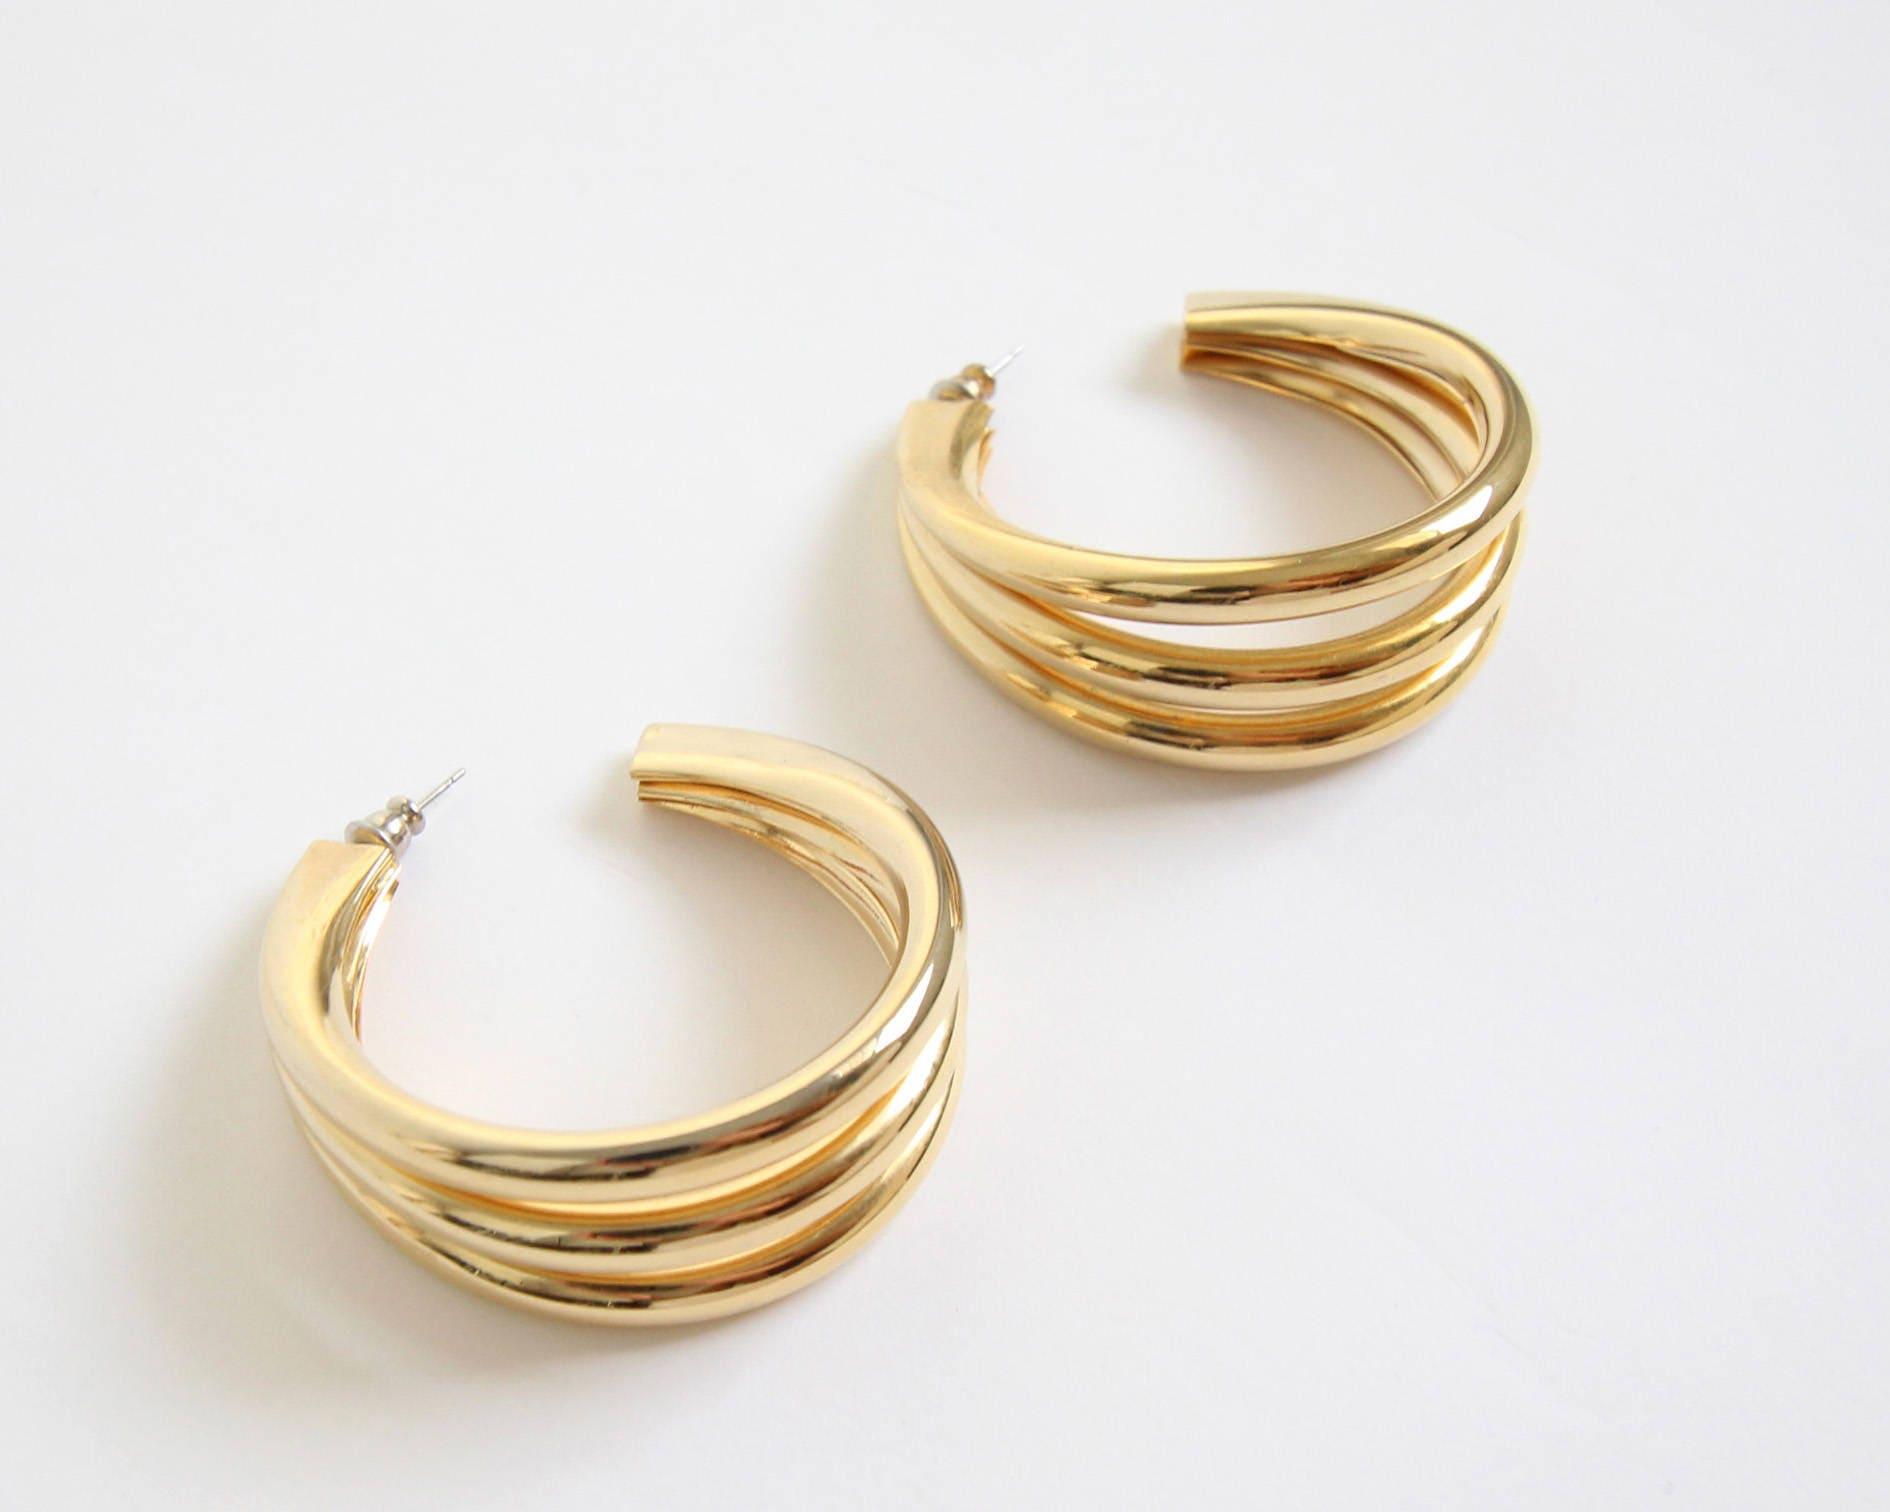 pierced excellent modernist vintage authentic abstract gold earrings pin givenchy